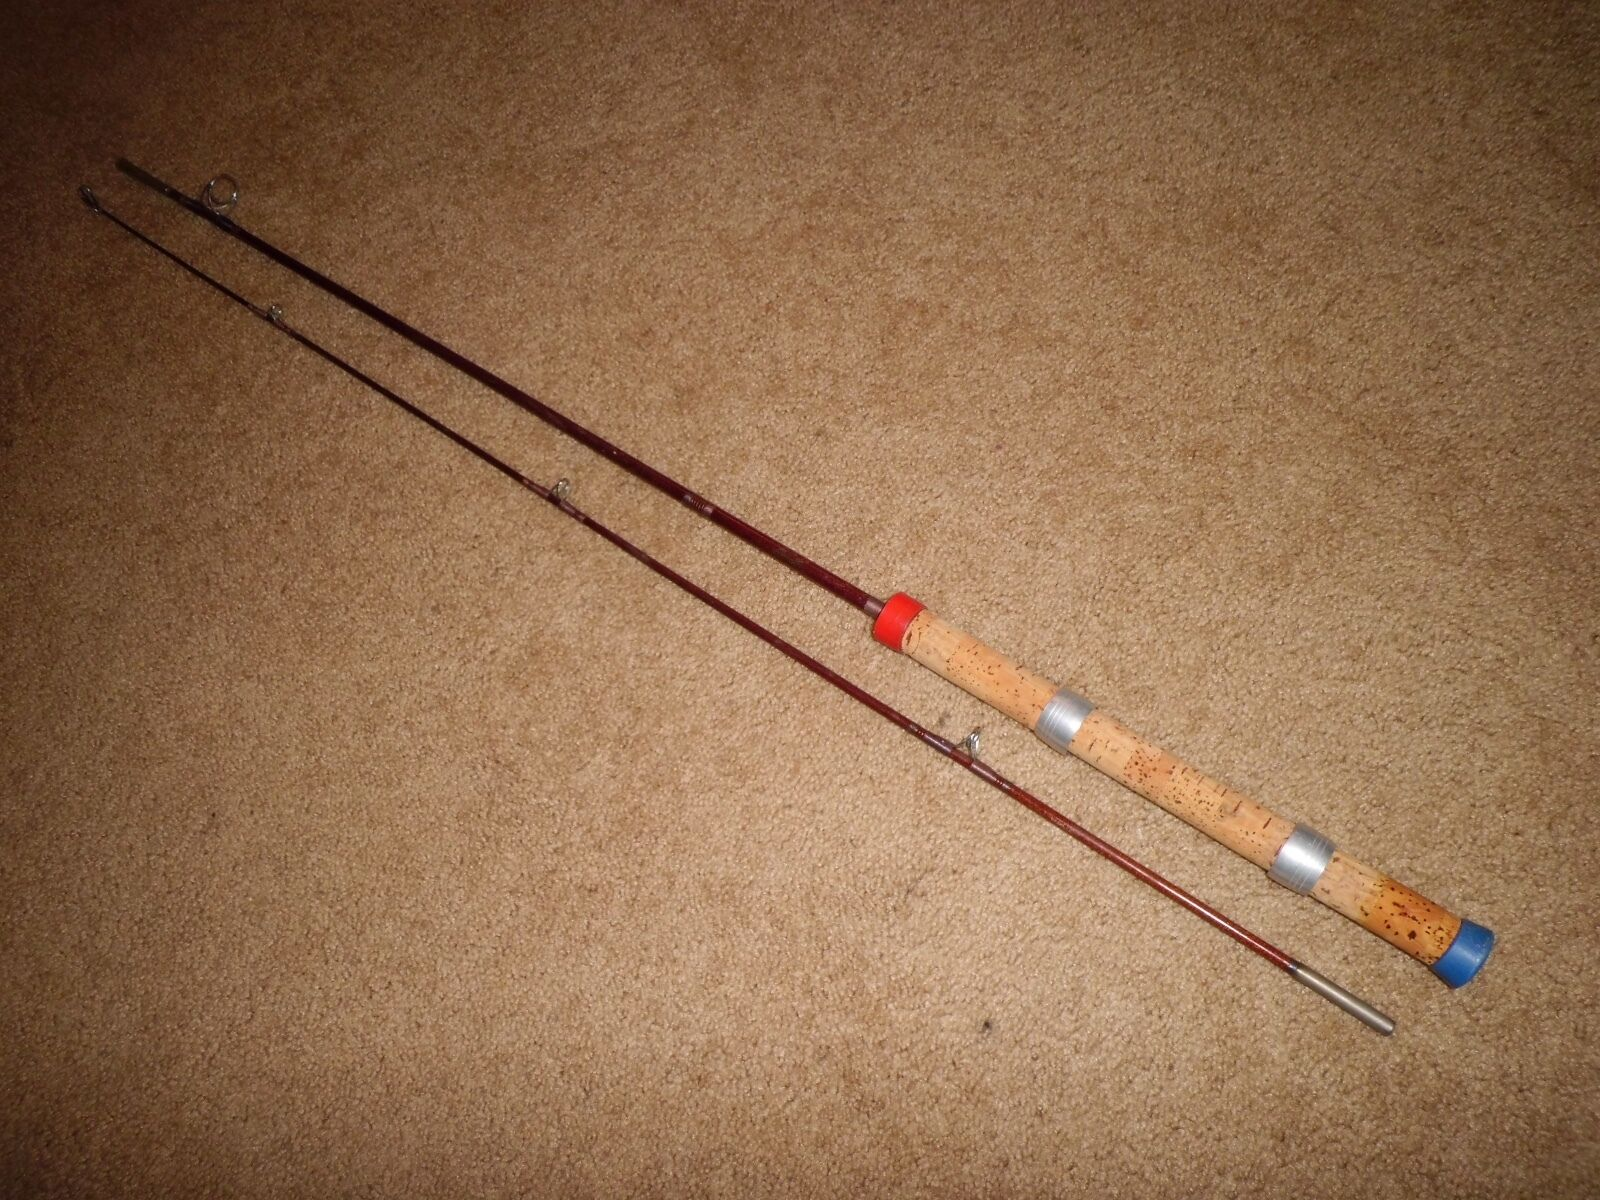 Vintage Bristol Nyglax Spinall Spinning 6-1 2' Rod made in USA